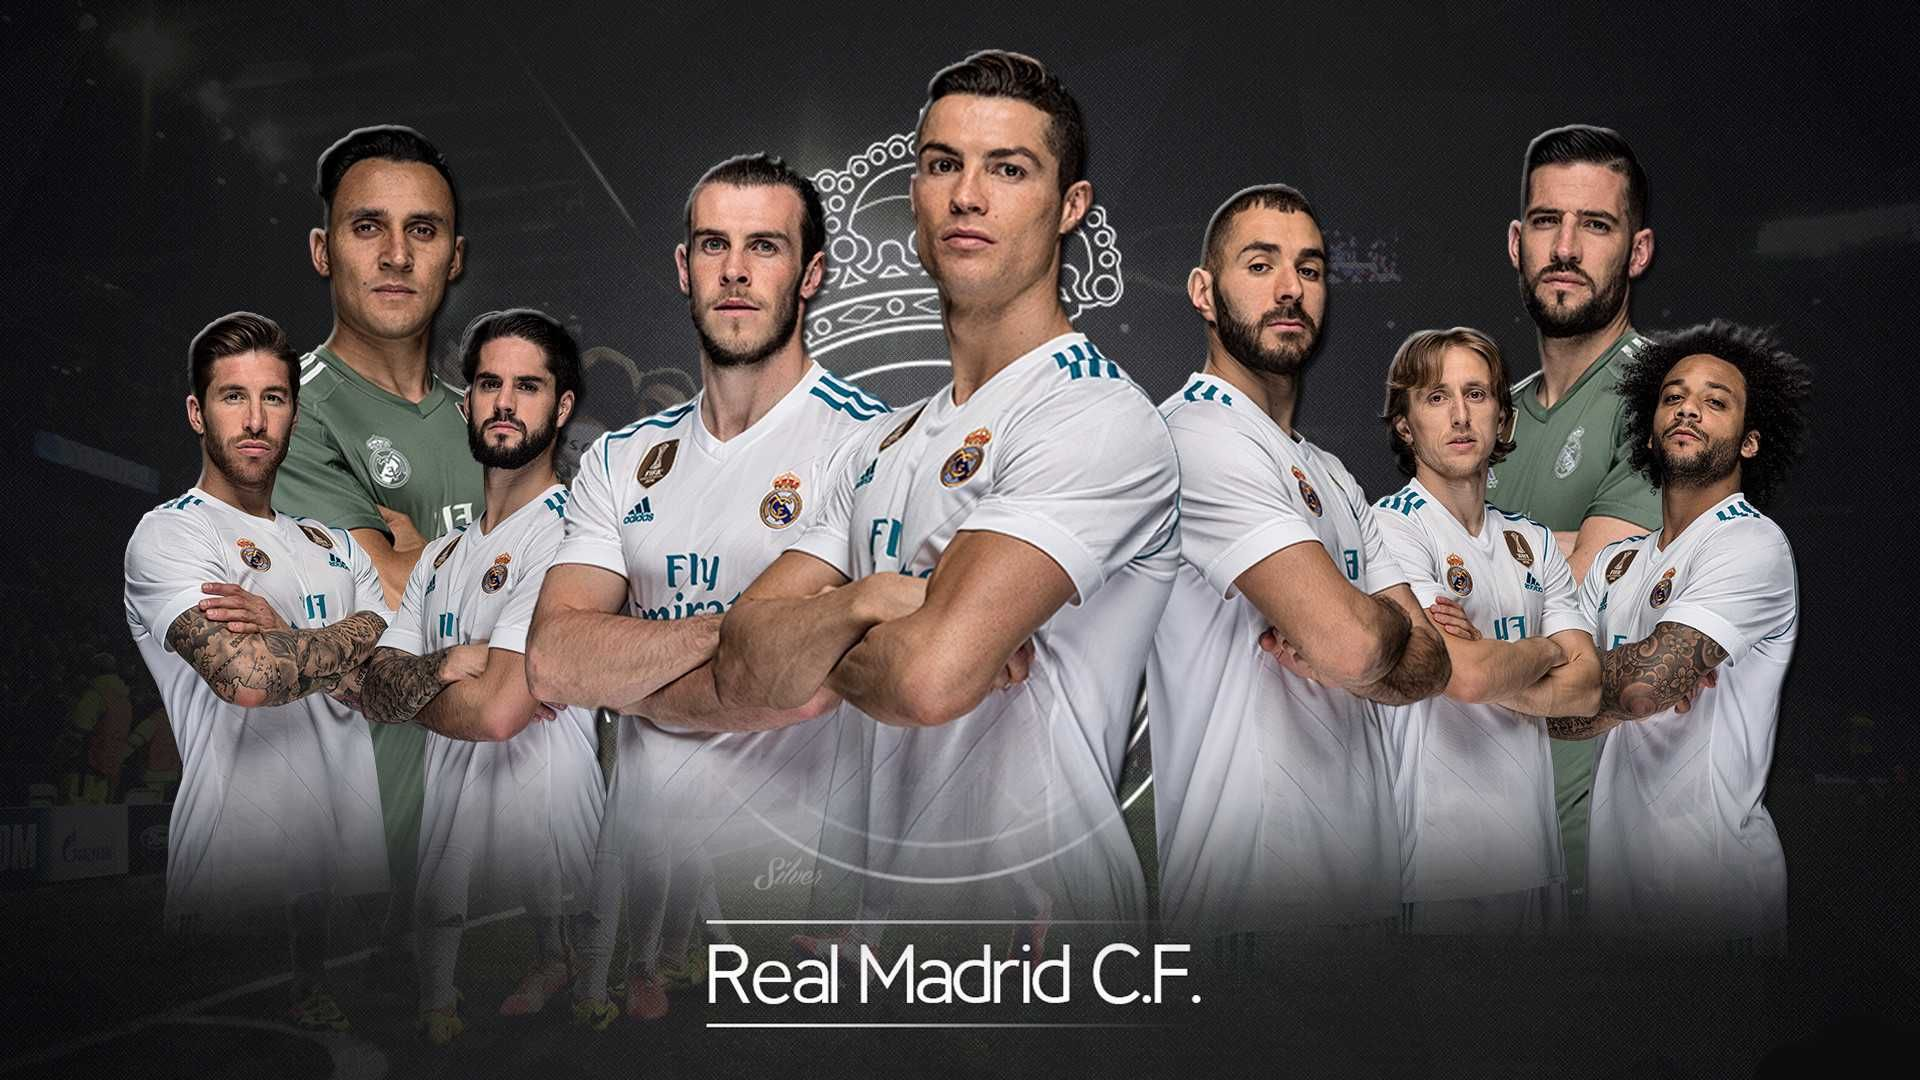 Real Madrid Wallpaper Equipo 2018 Hd Football In 2020 Real Madrid Team Real Madrid Wallpapers Real Madrid